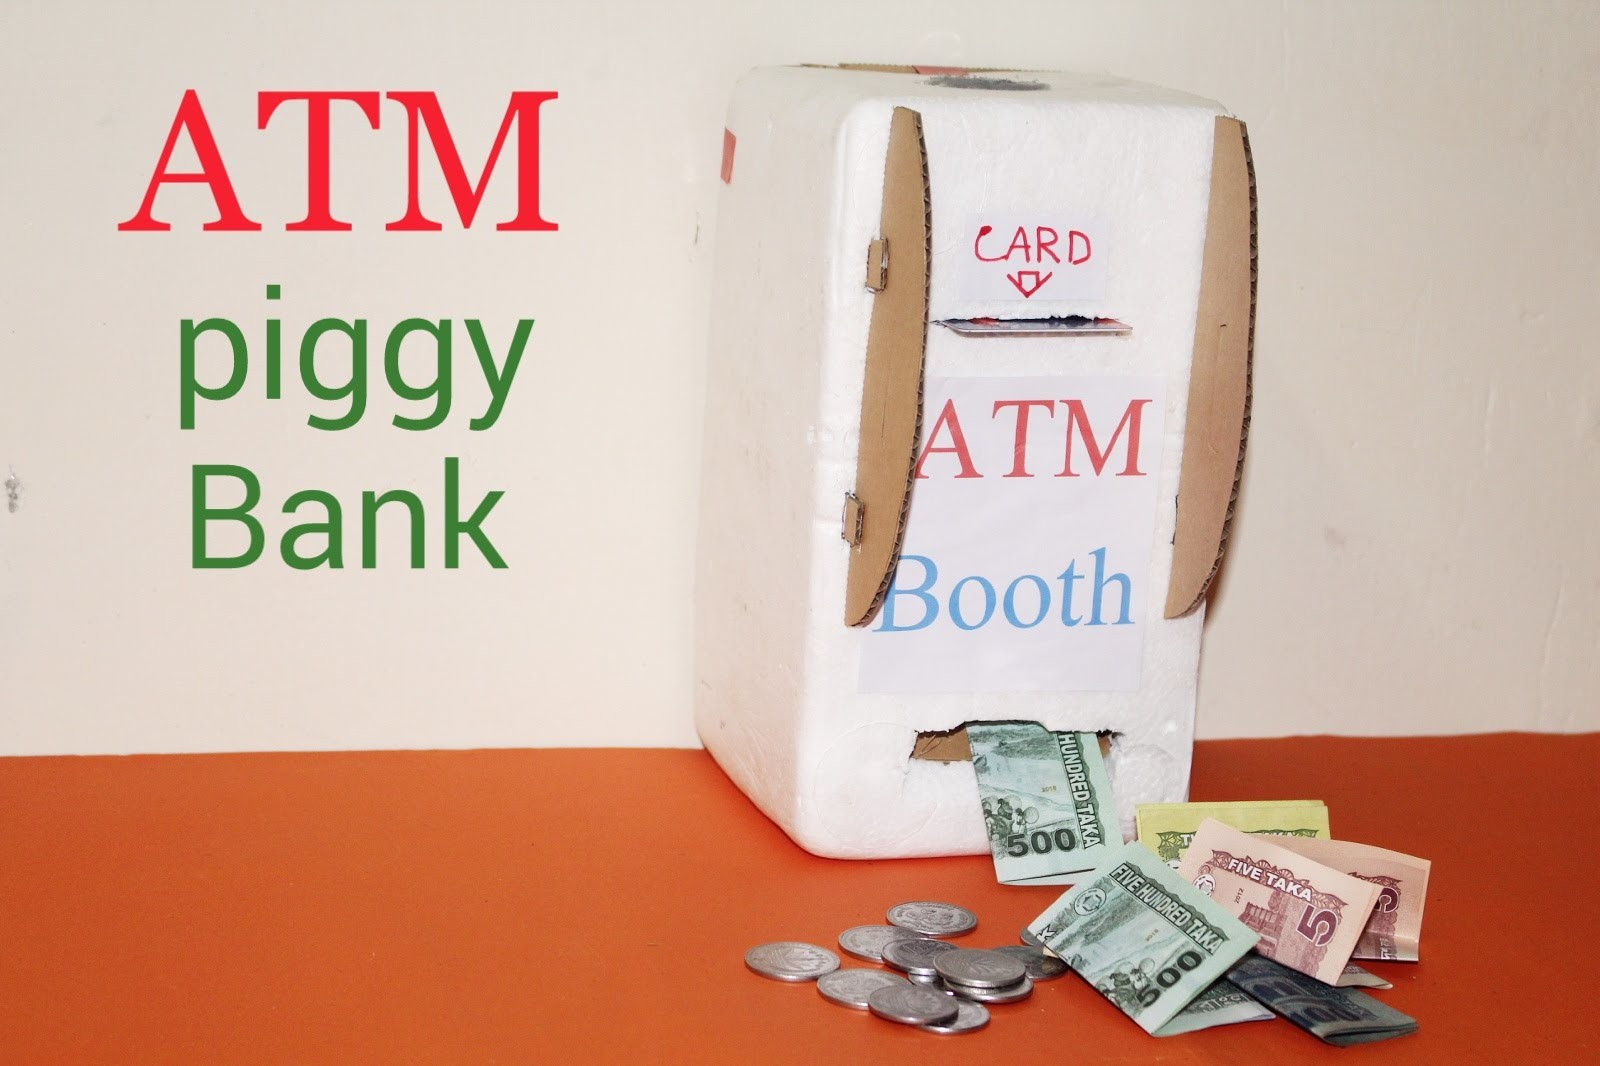 How to make ATM Piggy Bank at home